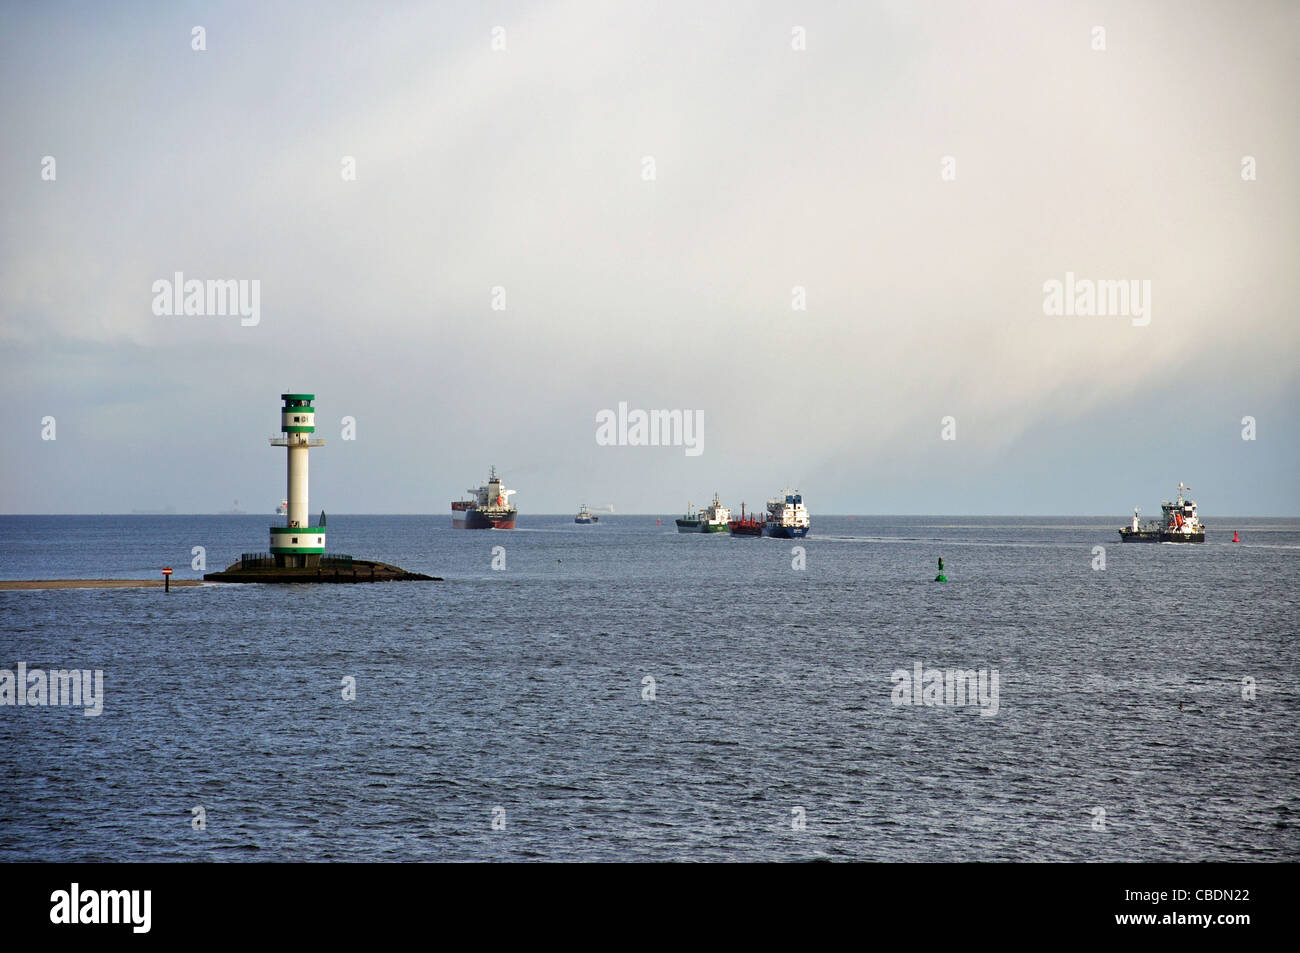 Ships in Baltic Sea after leaving Kiel Canal, Schleswig-Holstein, Federal Republic of Germany - Stock Image